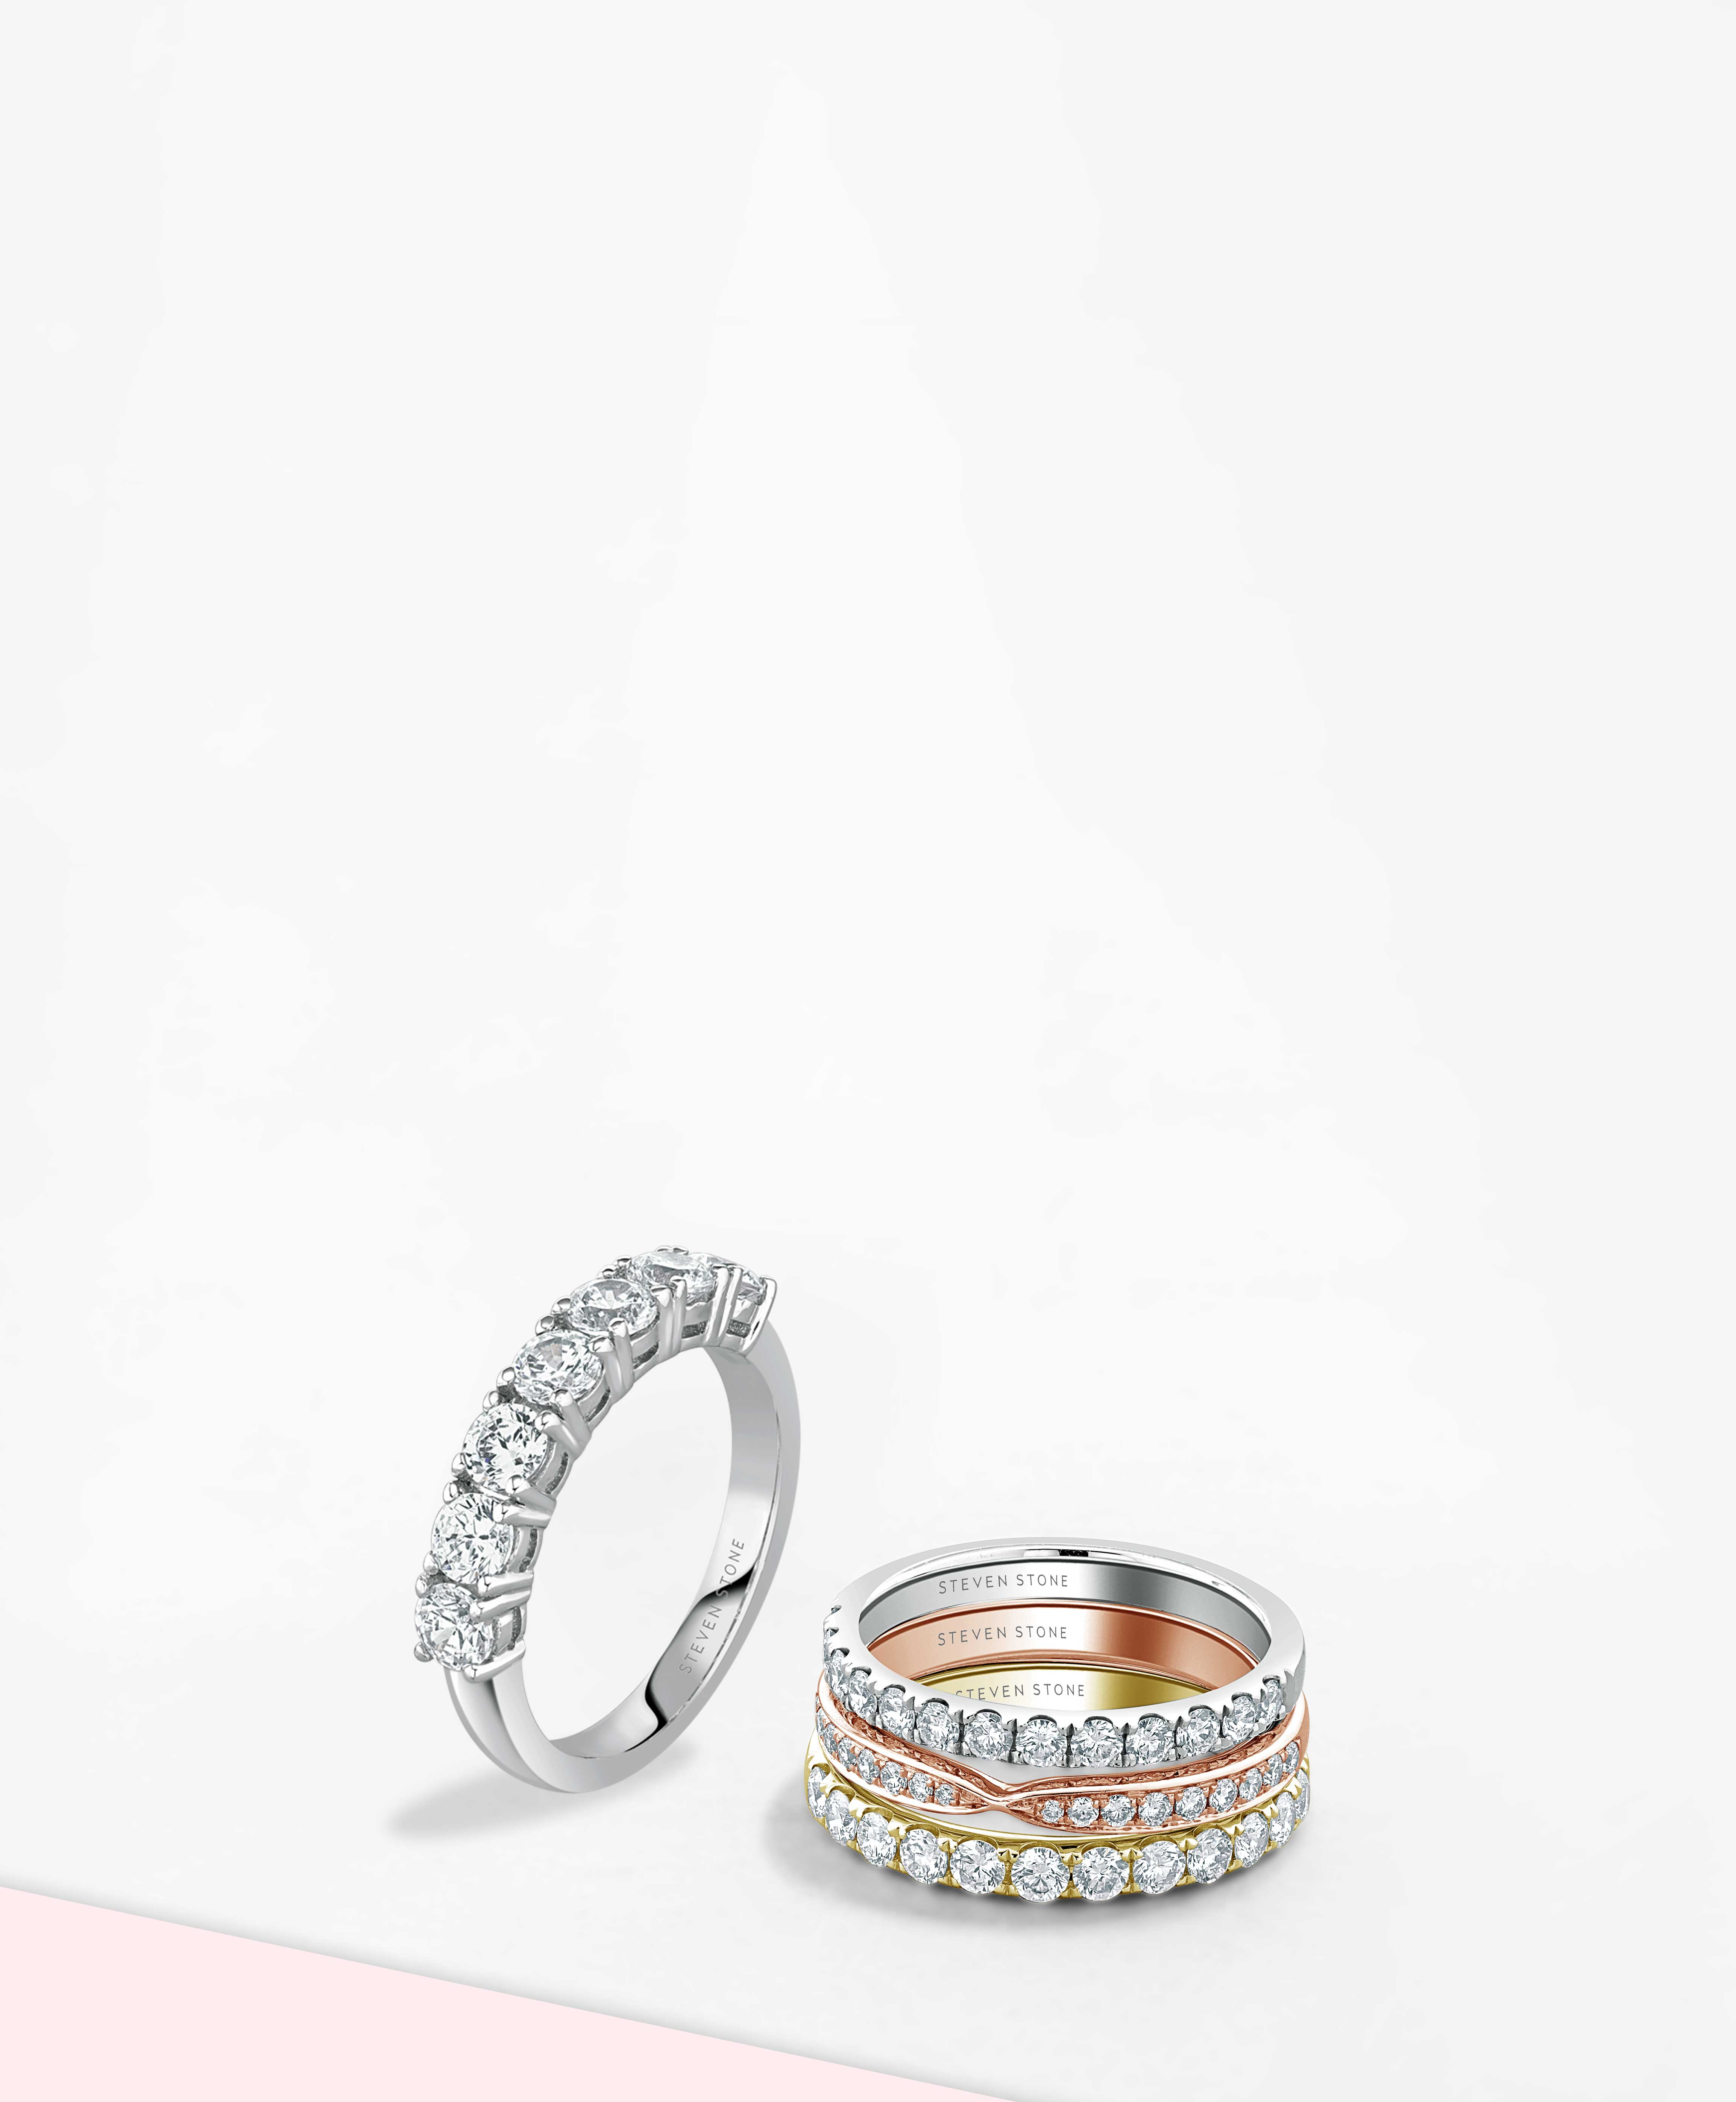 White Gold Half Set Eternity Rings - Steven Stone